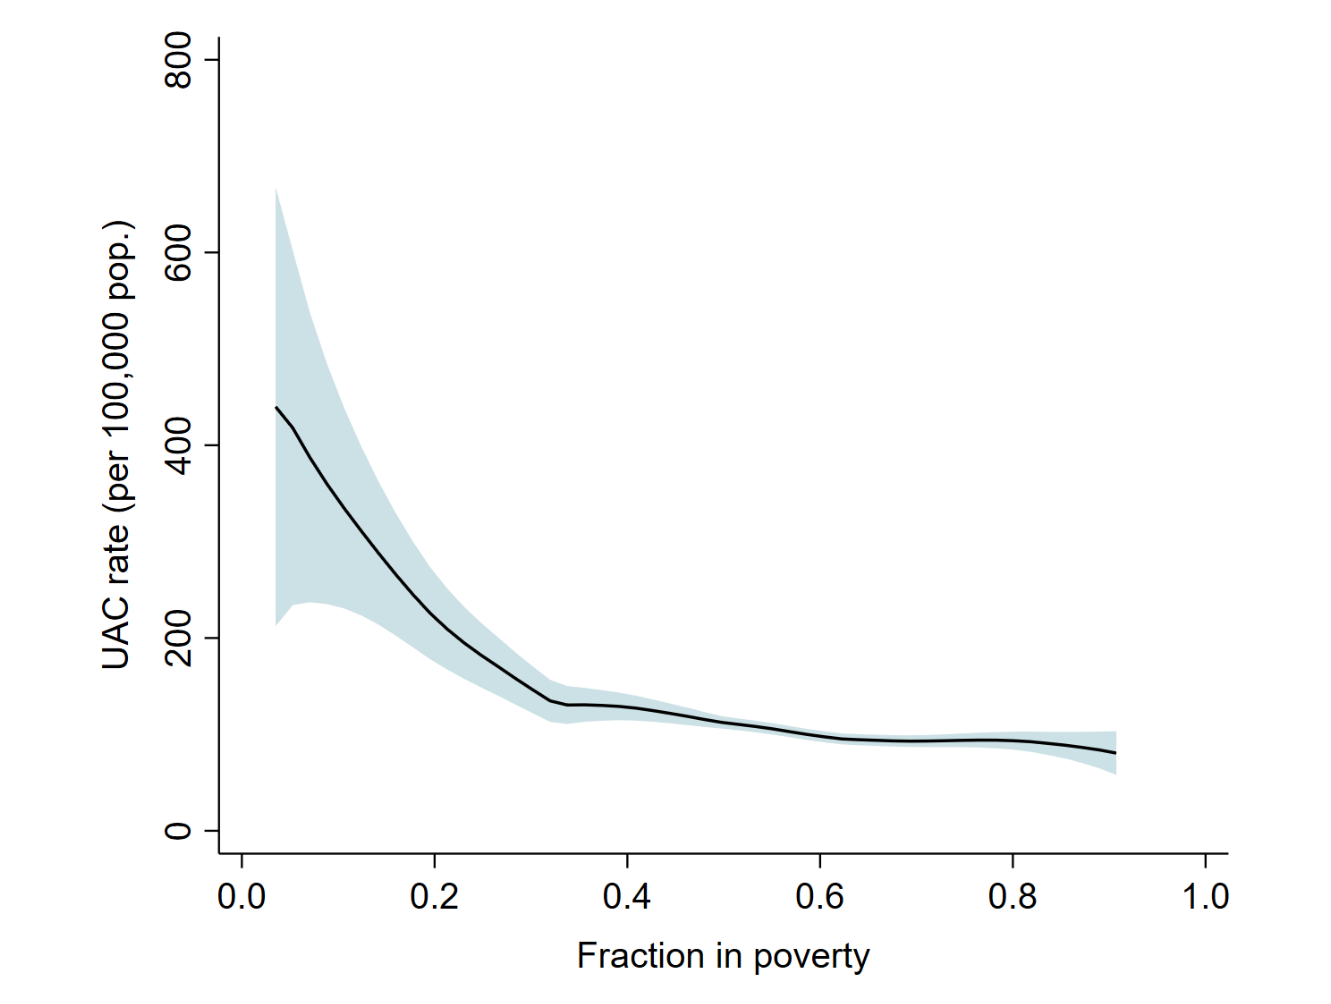 A figure showing the simple correlation between the intensity of child migration from each municipality of the region, and the poverty rate in that municipality